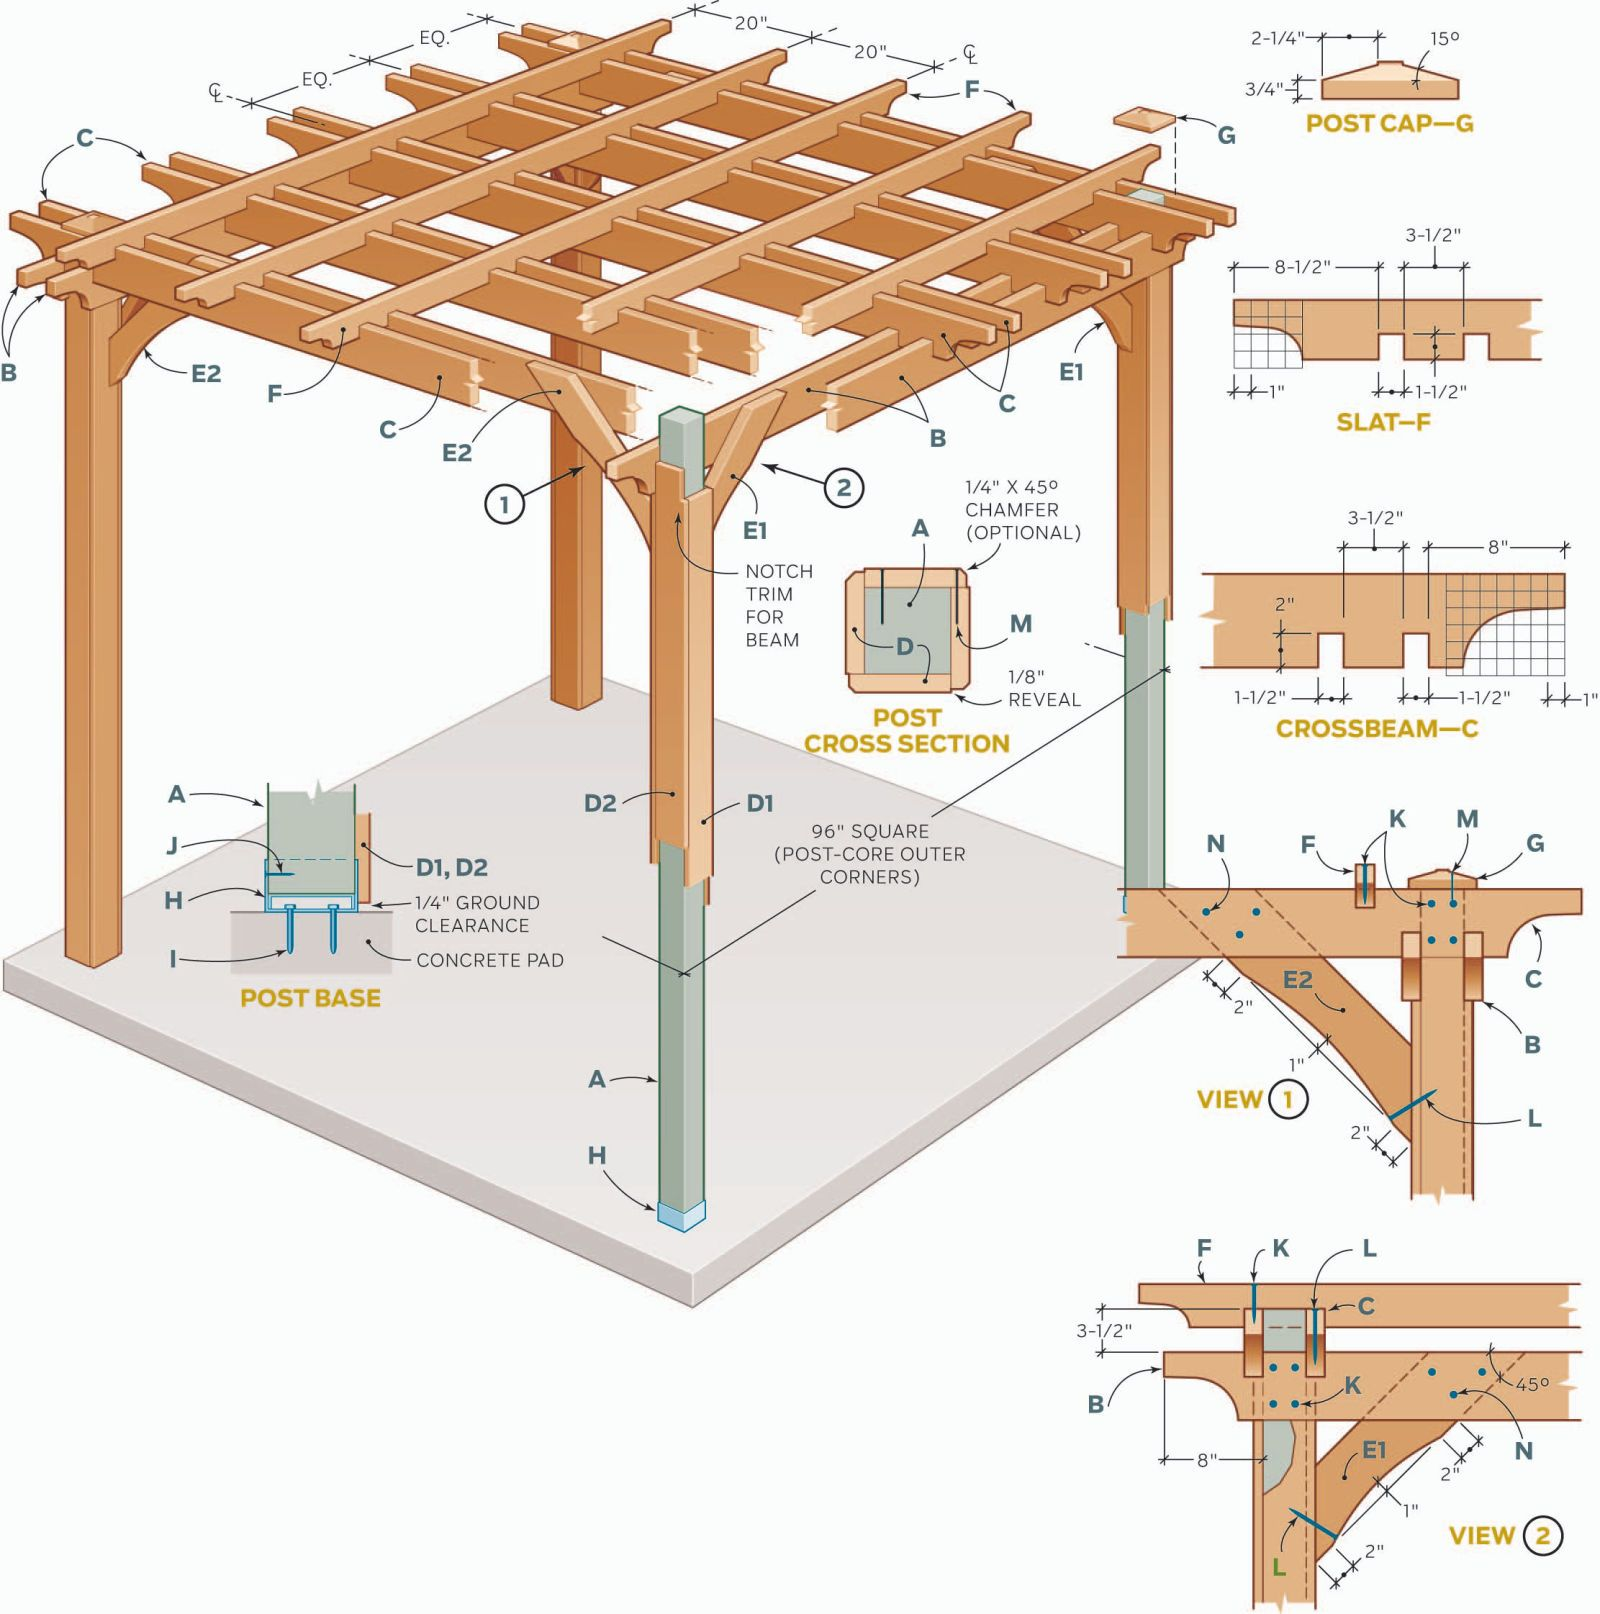 Pergola plans how to build your own pergola 3d for Create blueprints online free